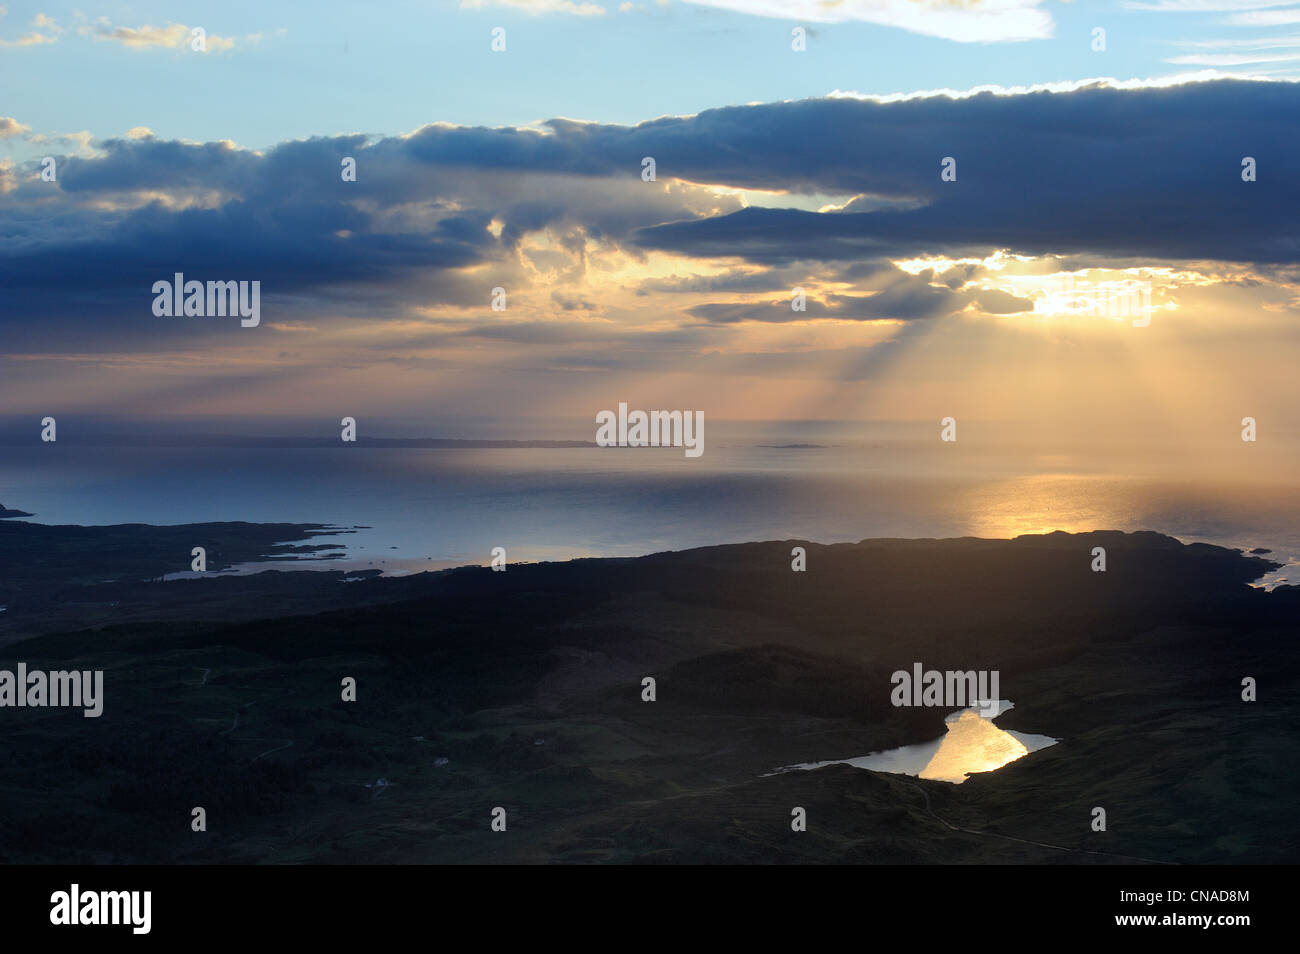 United Kingdom, Scotland, Highland, Inner Hebrides, Isle of Mull, Quinish Point on the north coast (aerial view) - Stock Image